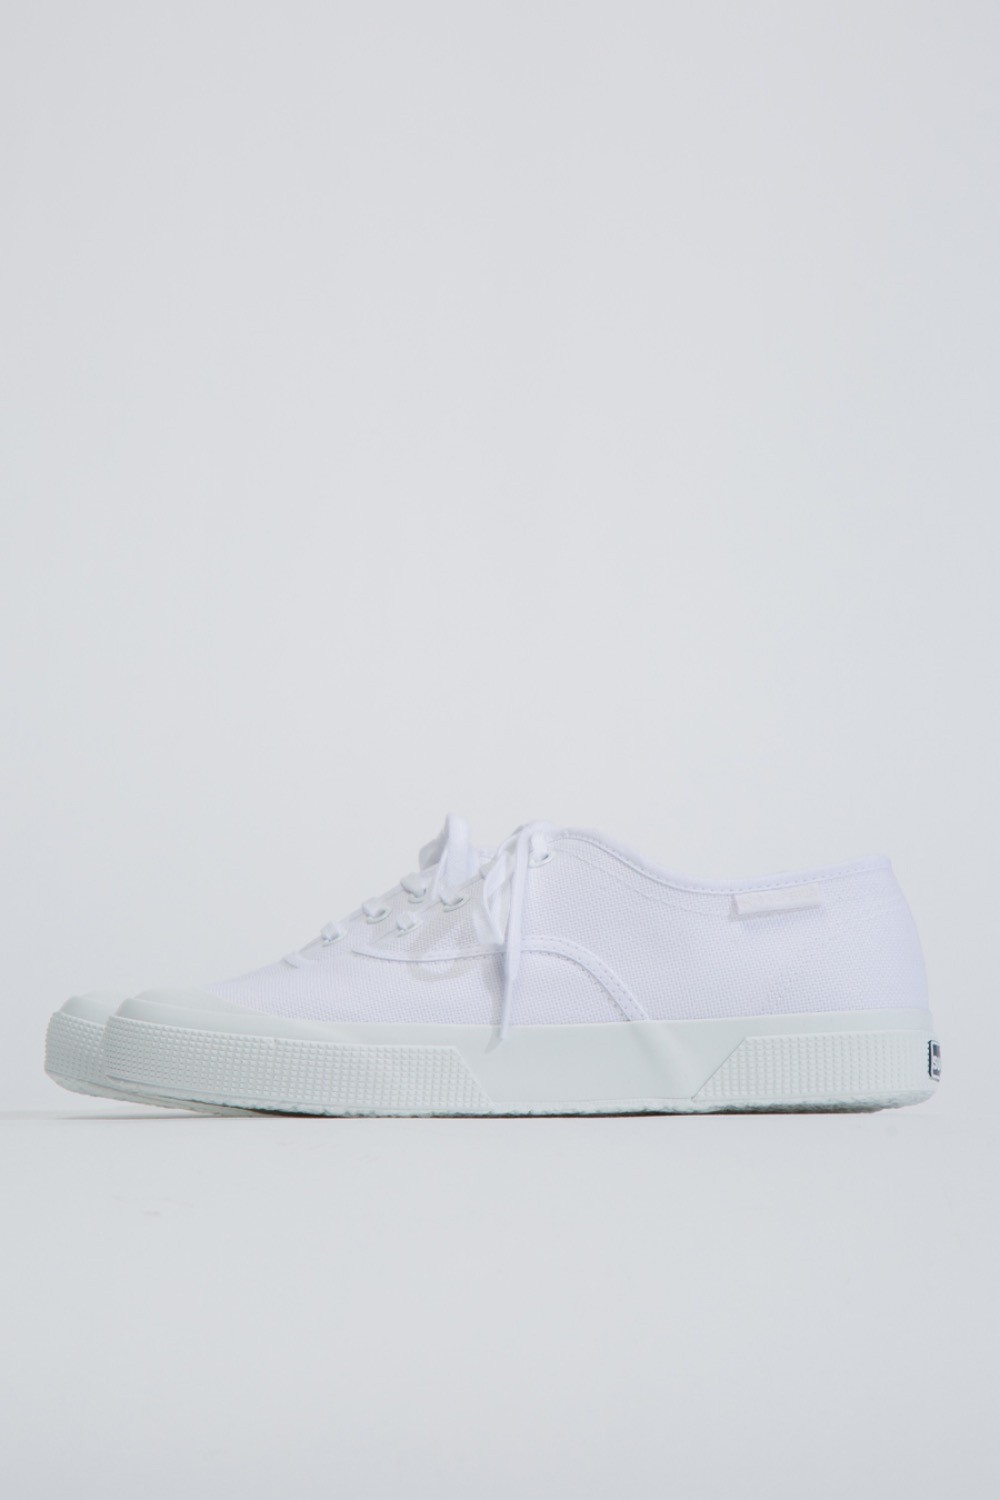 KAPTAIN SUNSHINE X SUPERGA TRAINER LOW WHITE